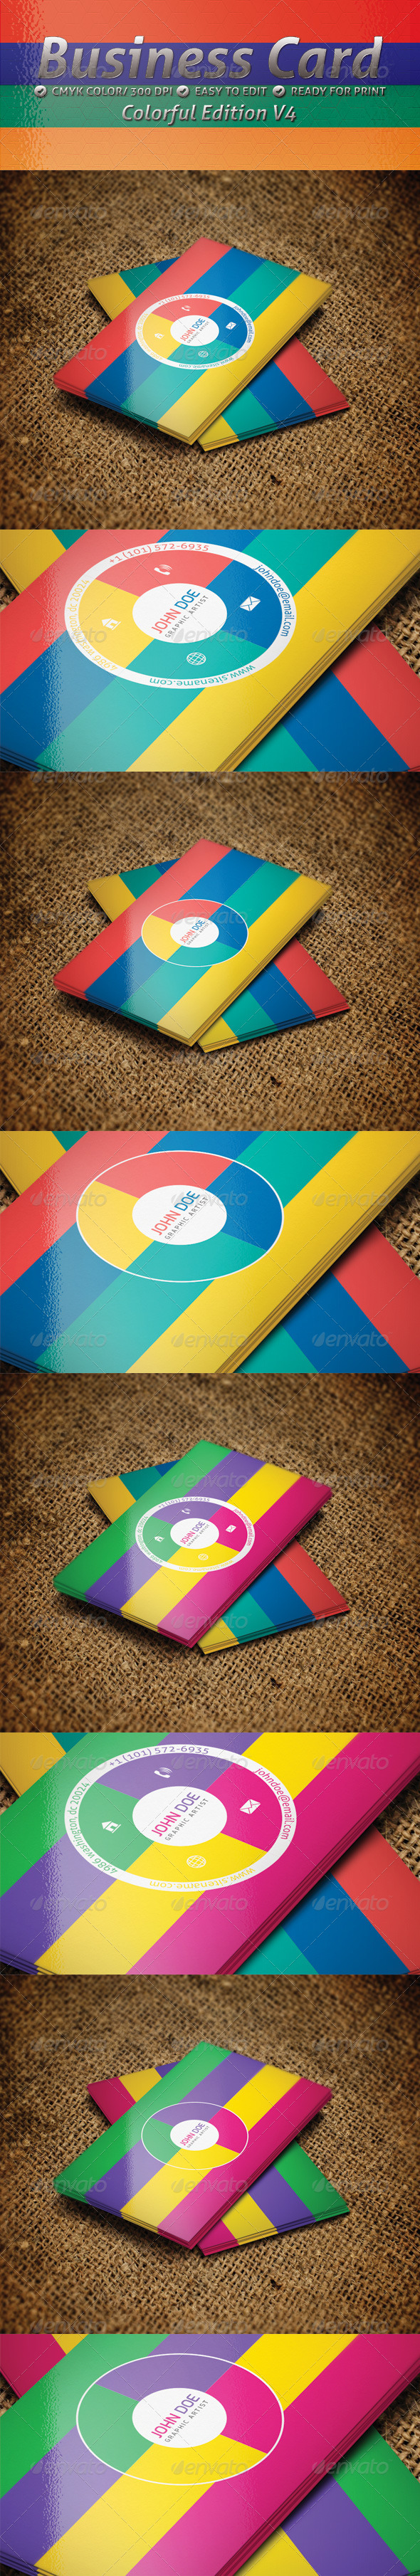 Colorful Edition V4 - Creative Business Cards